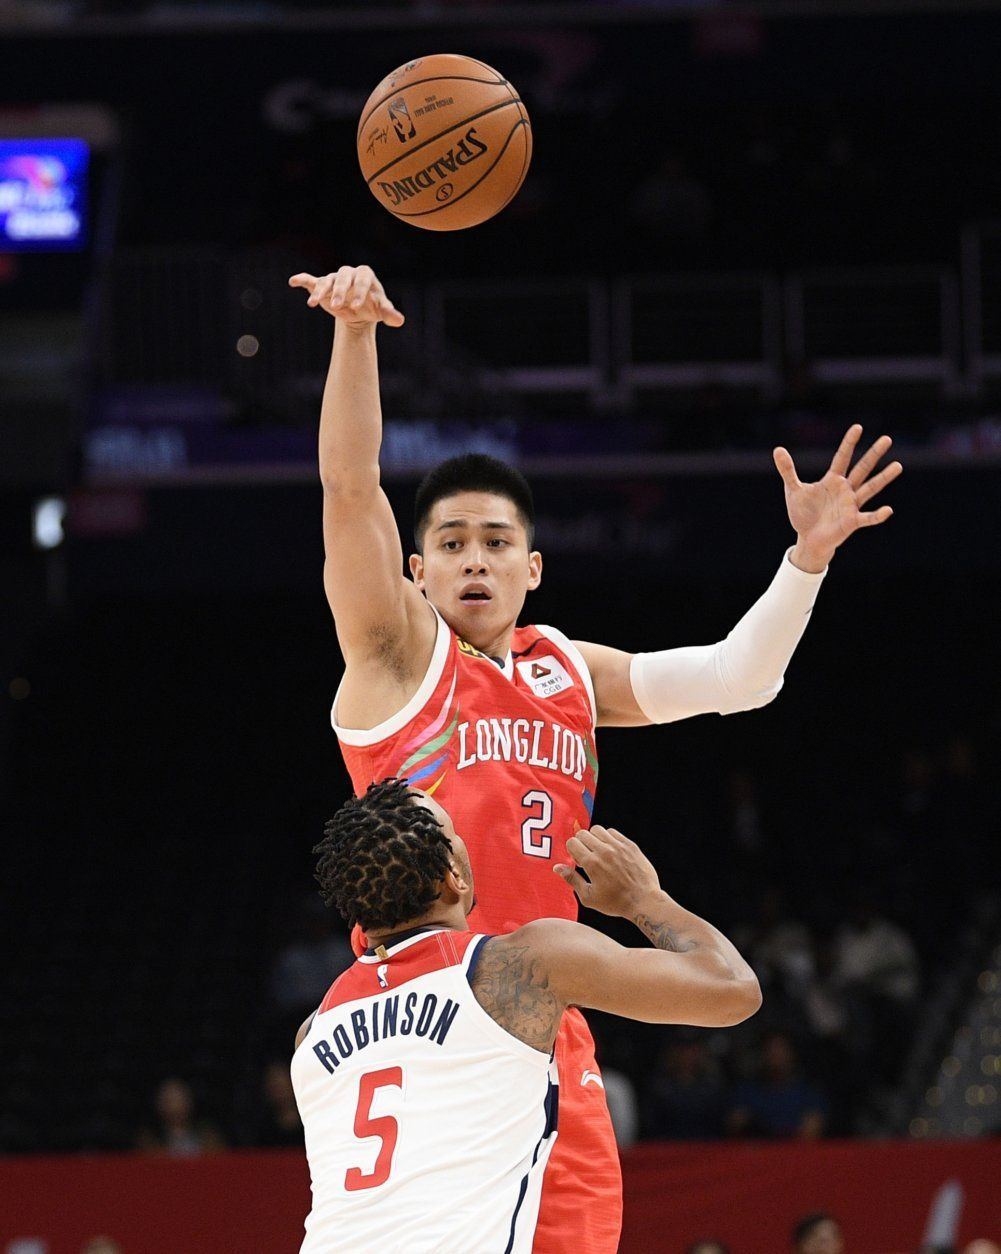 Guangzhou Loong-Lions guard Ying-Chun Chen (2) passes the ball over Washington Wizards guard Justin Robinson (5) during the first half of an NBA exhibition basketball game, Wednesday, Oct. 9, 2019, in Washington. (AP Photo/Nick Wass)